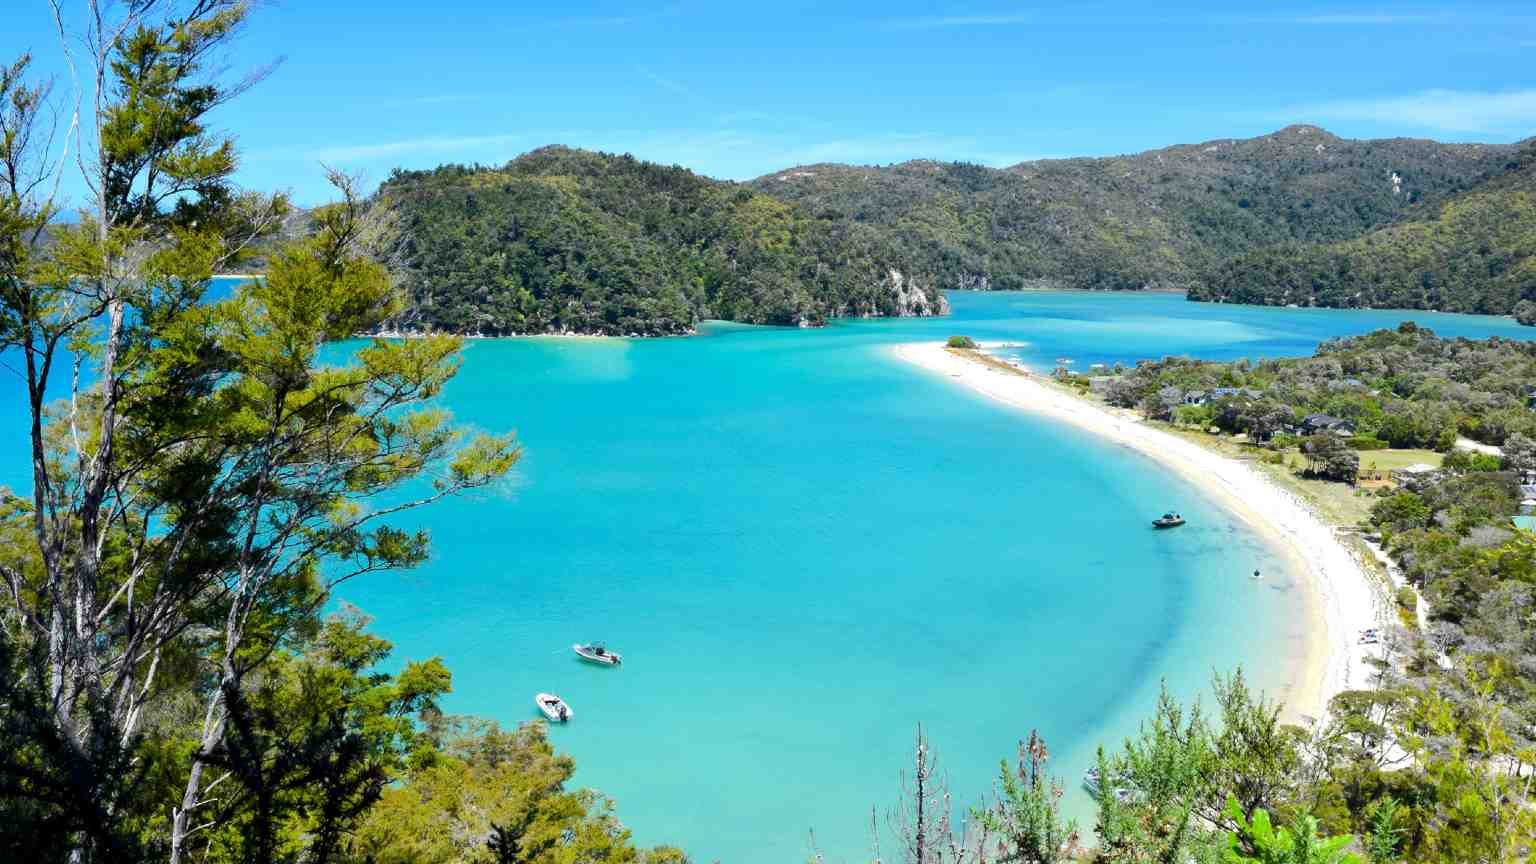 Cheap Nelson flights to book in 2020